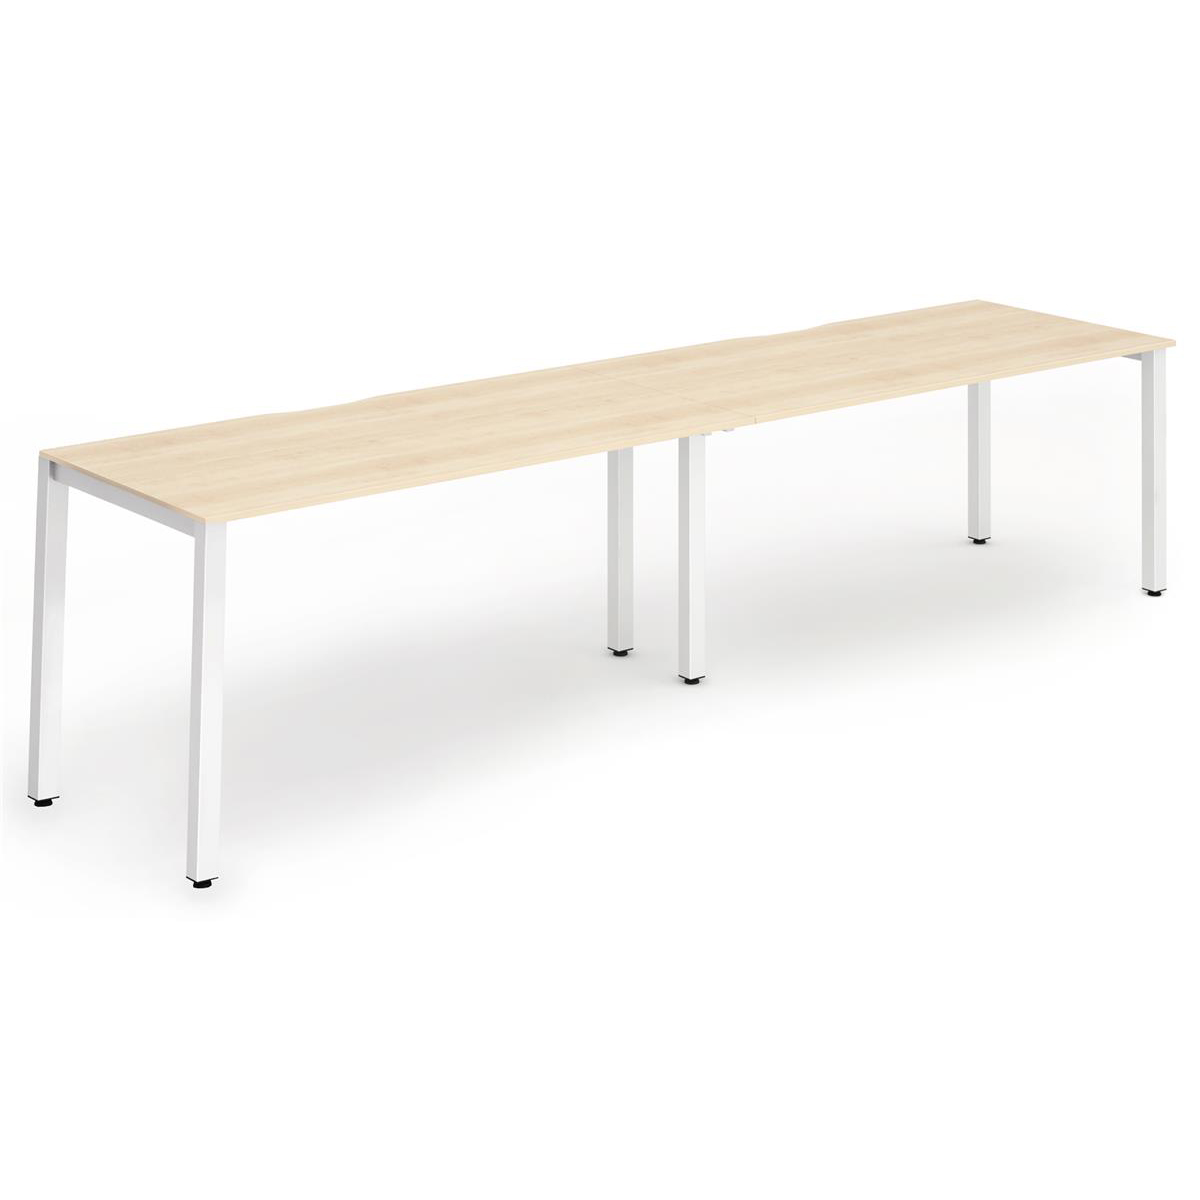 Trexus Bench Desk 2 Person Side to Side Configuration White Leg 3200x800mm Maple Ref BE346